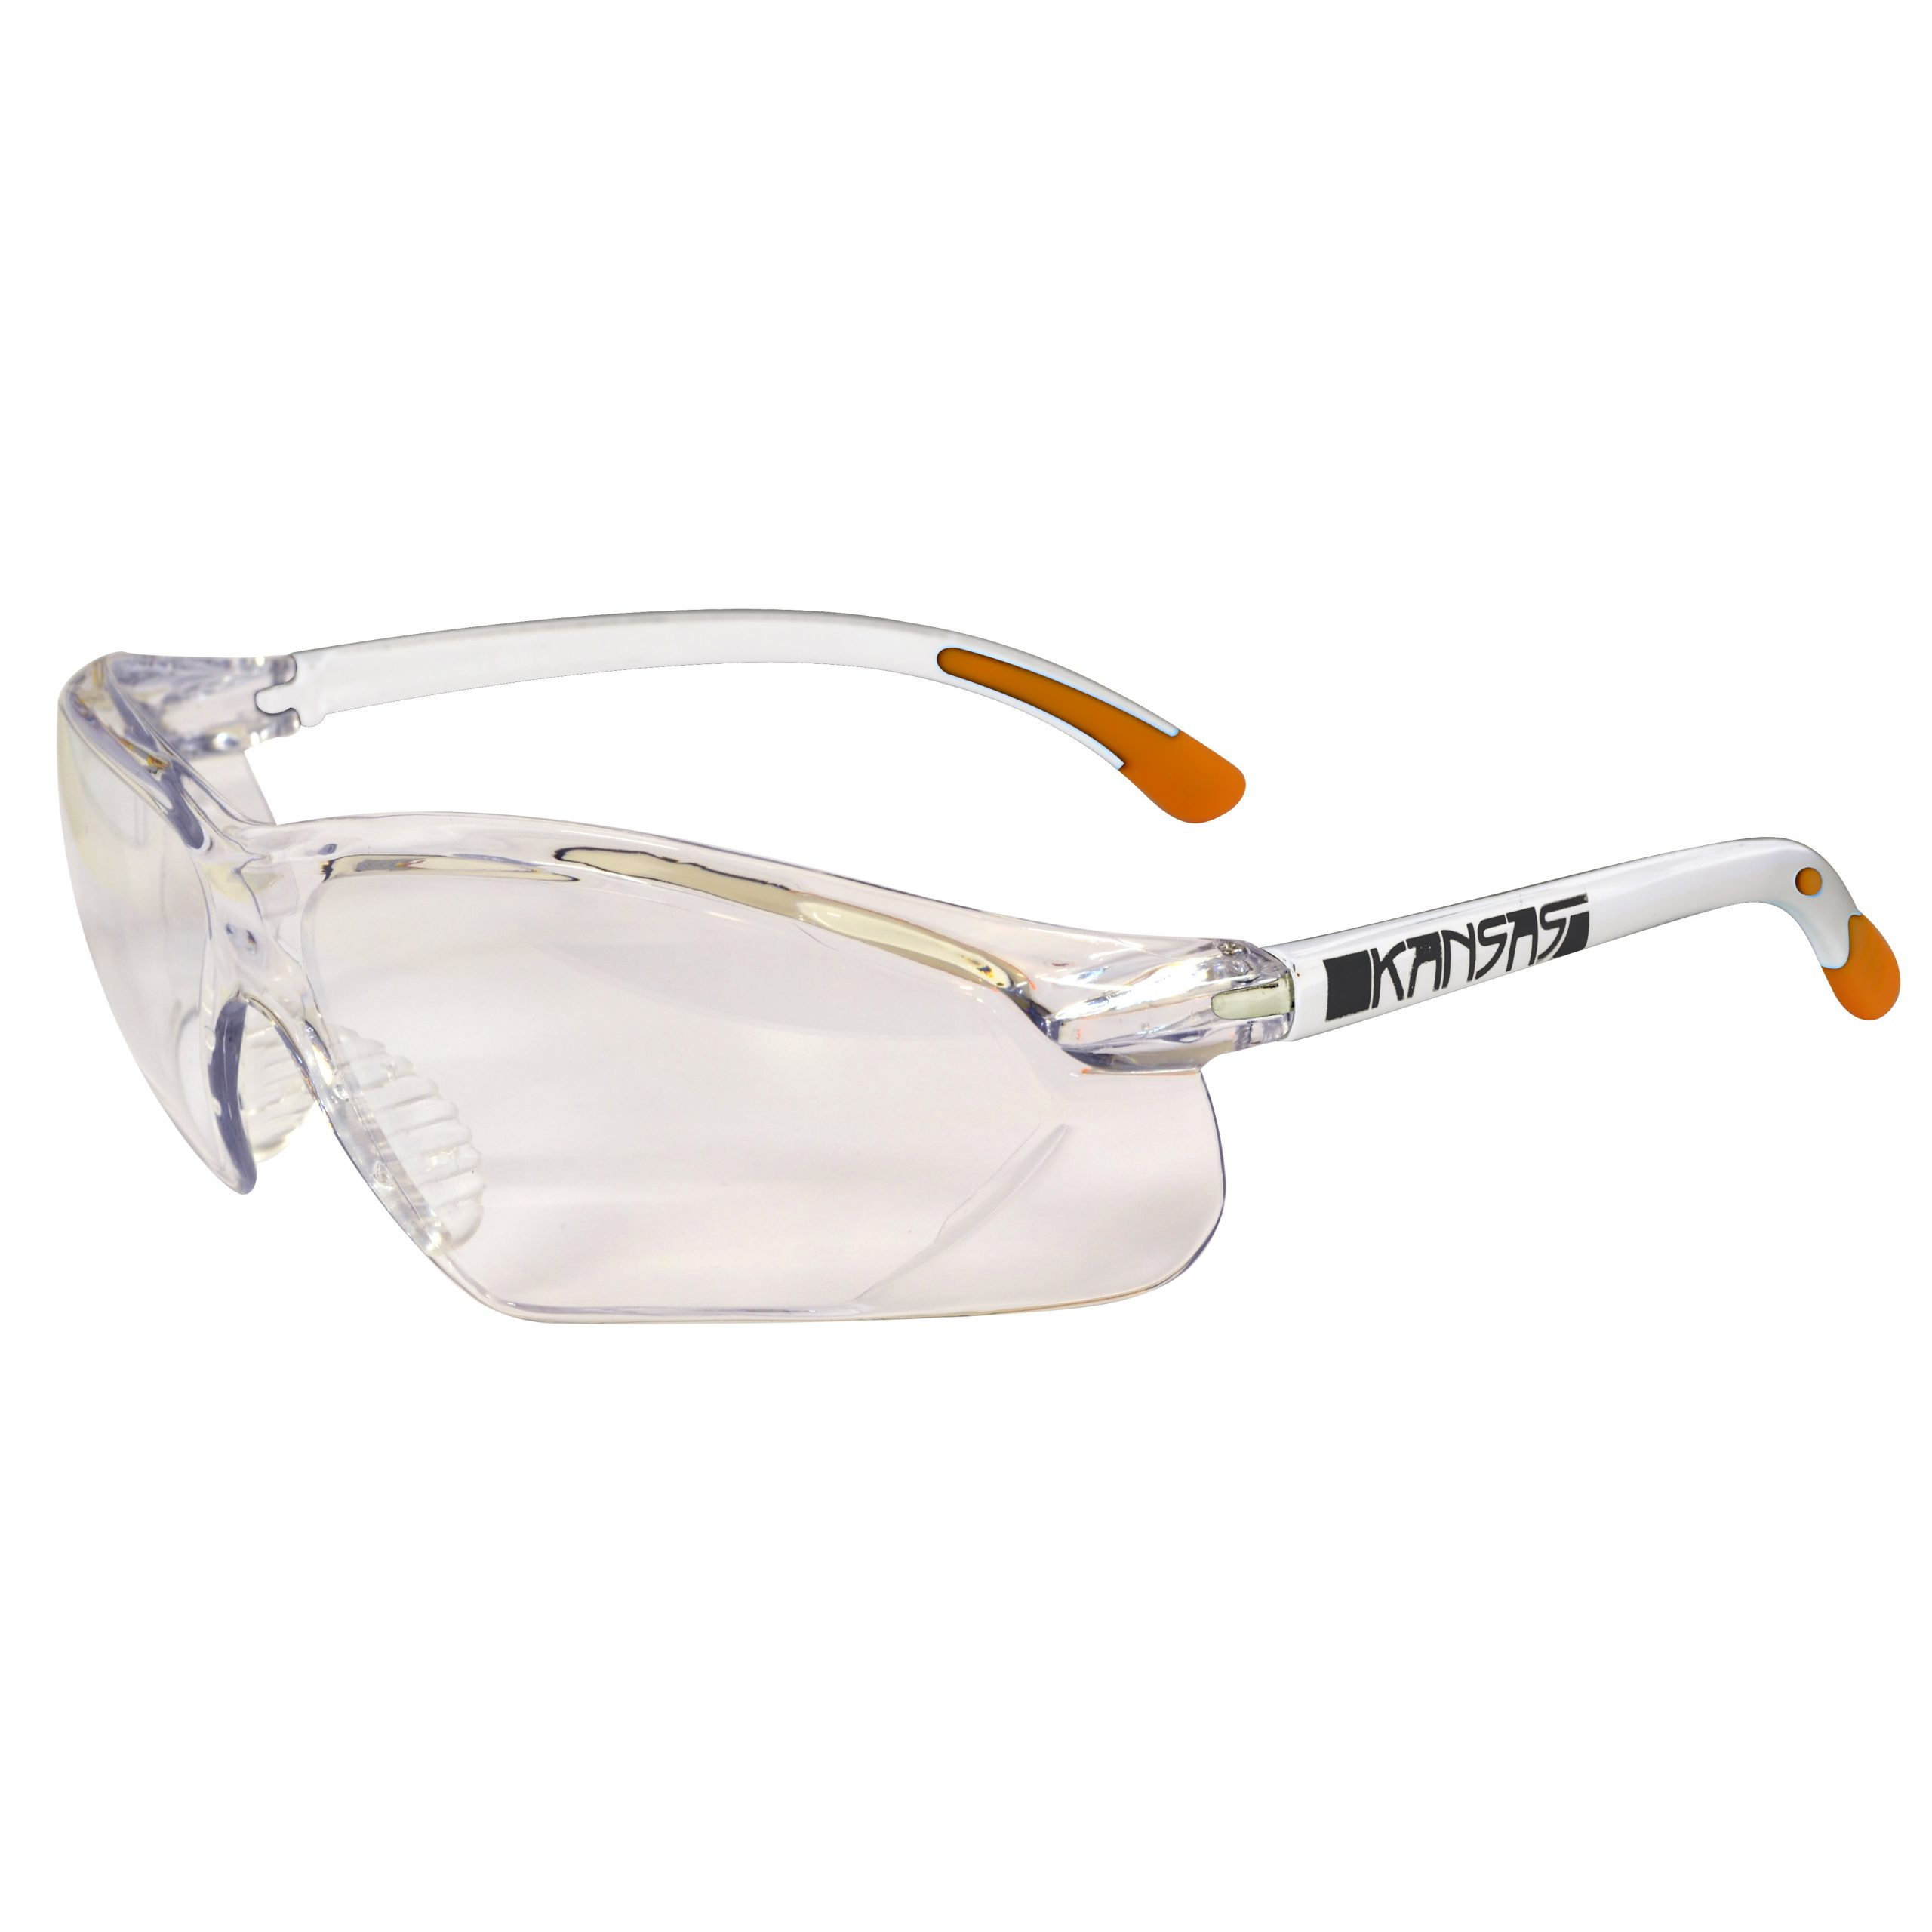 WorkShield - Clear Safety Glasses